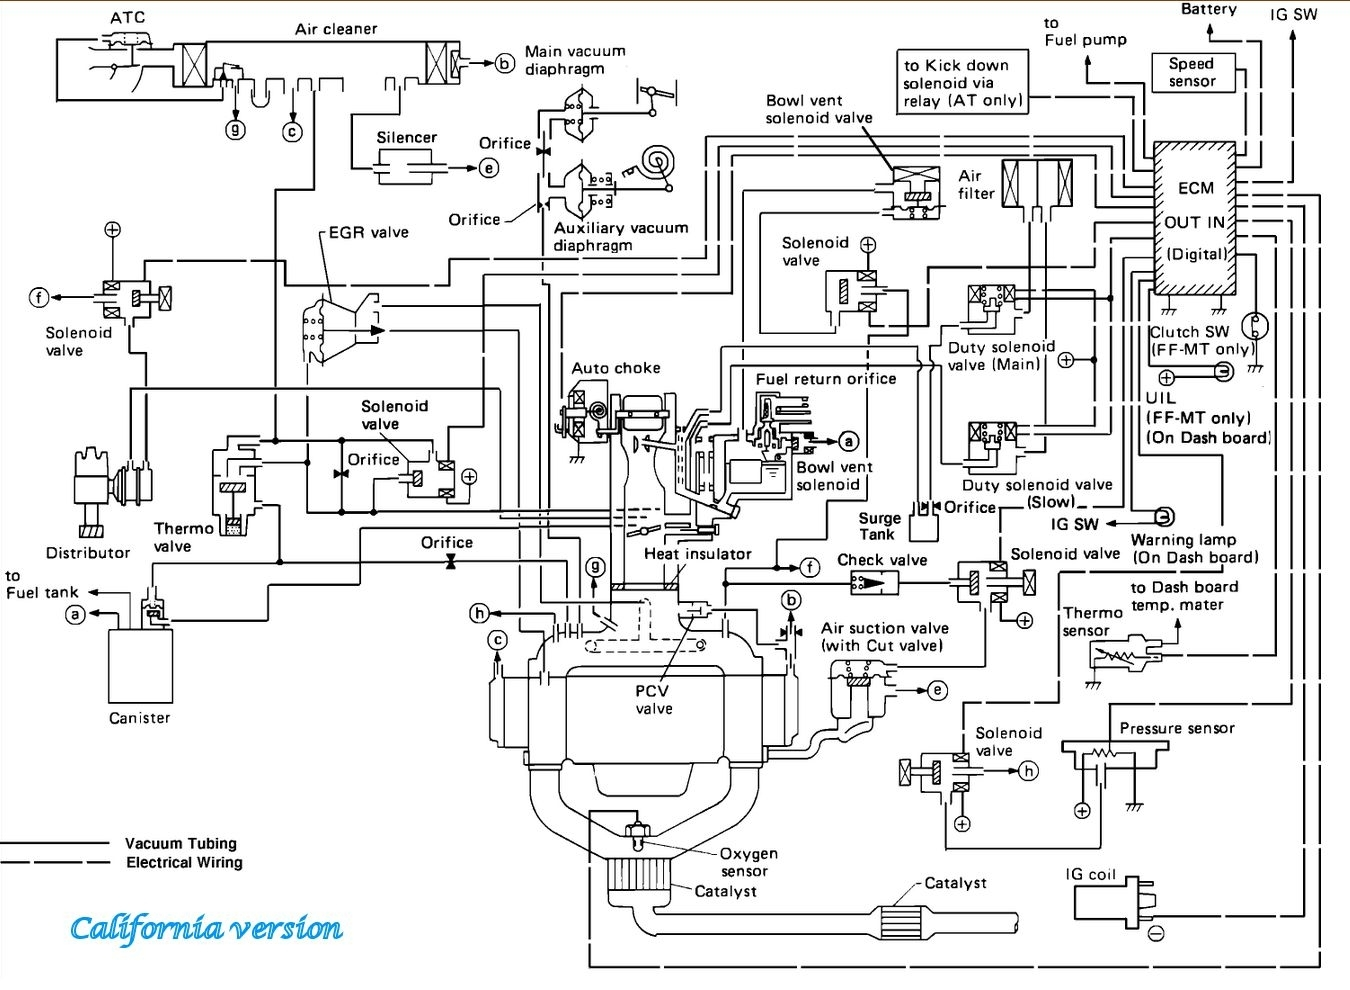 Vacuum Hose Diagram: I Have the Car Listed Above and I Got